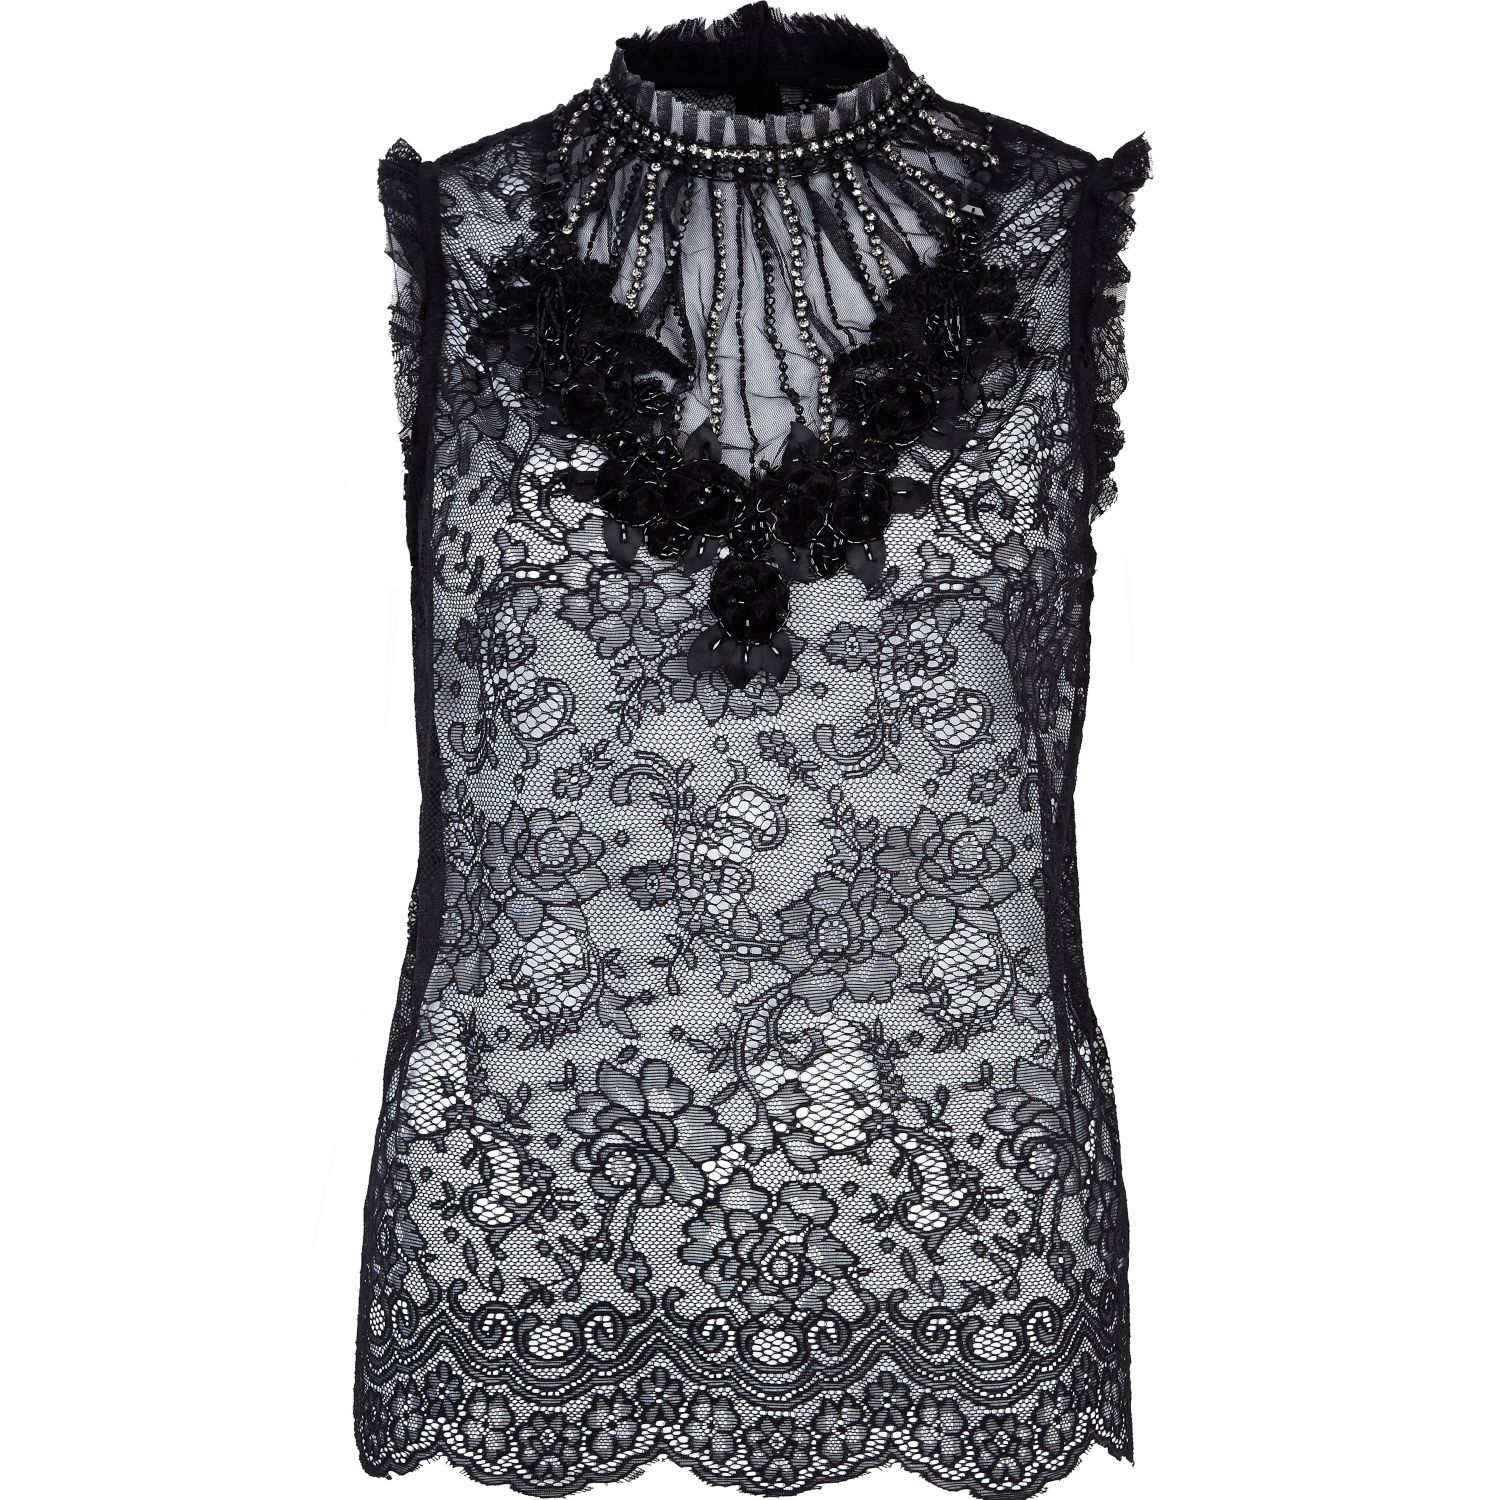 Wholesale Black Lace Tank